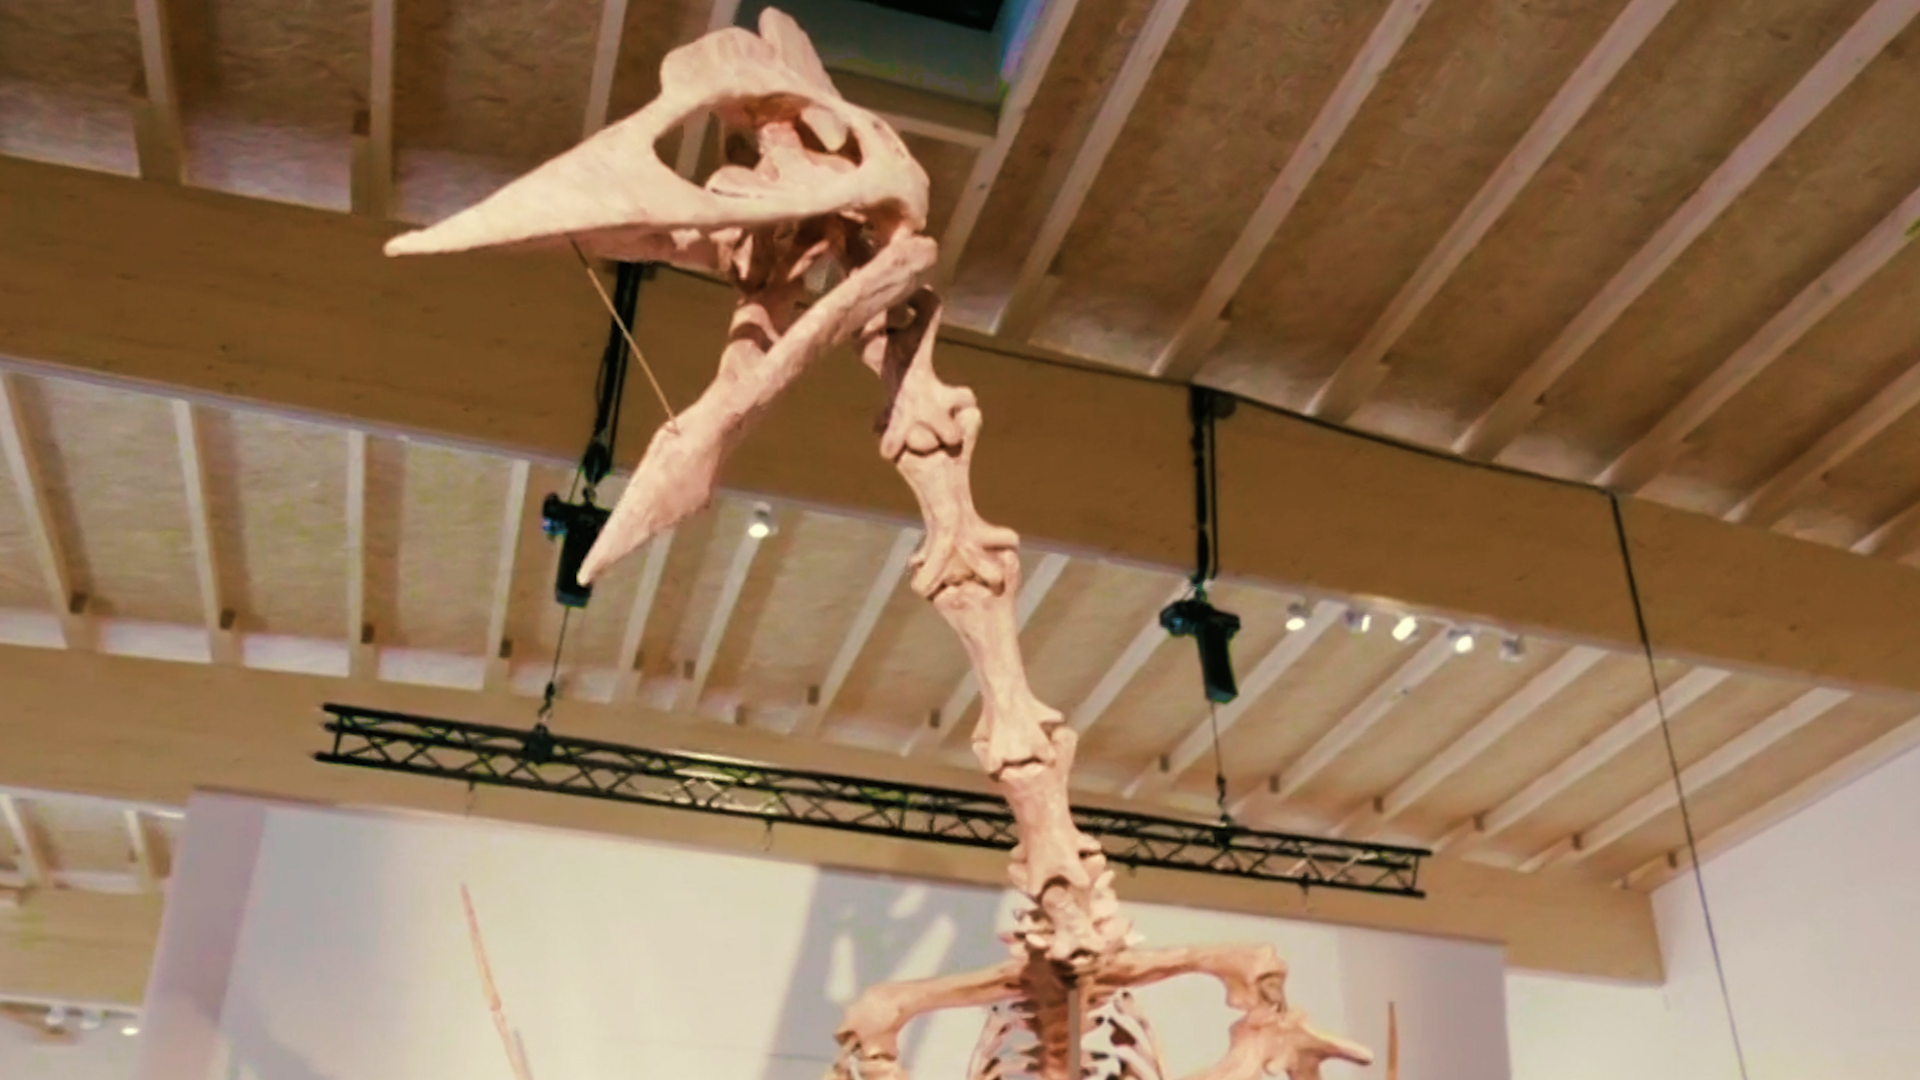 Meet Dracula, the gargantuan pterosaur, like a pterodactyl, now on display for the first time.